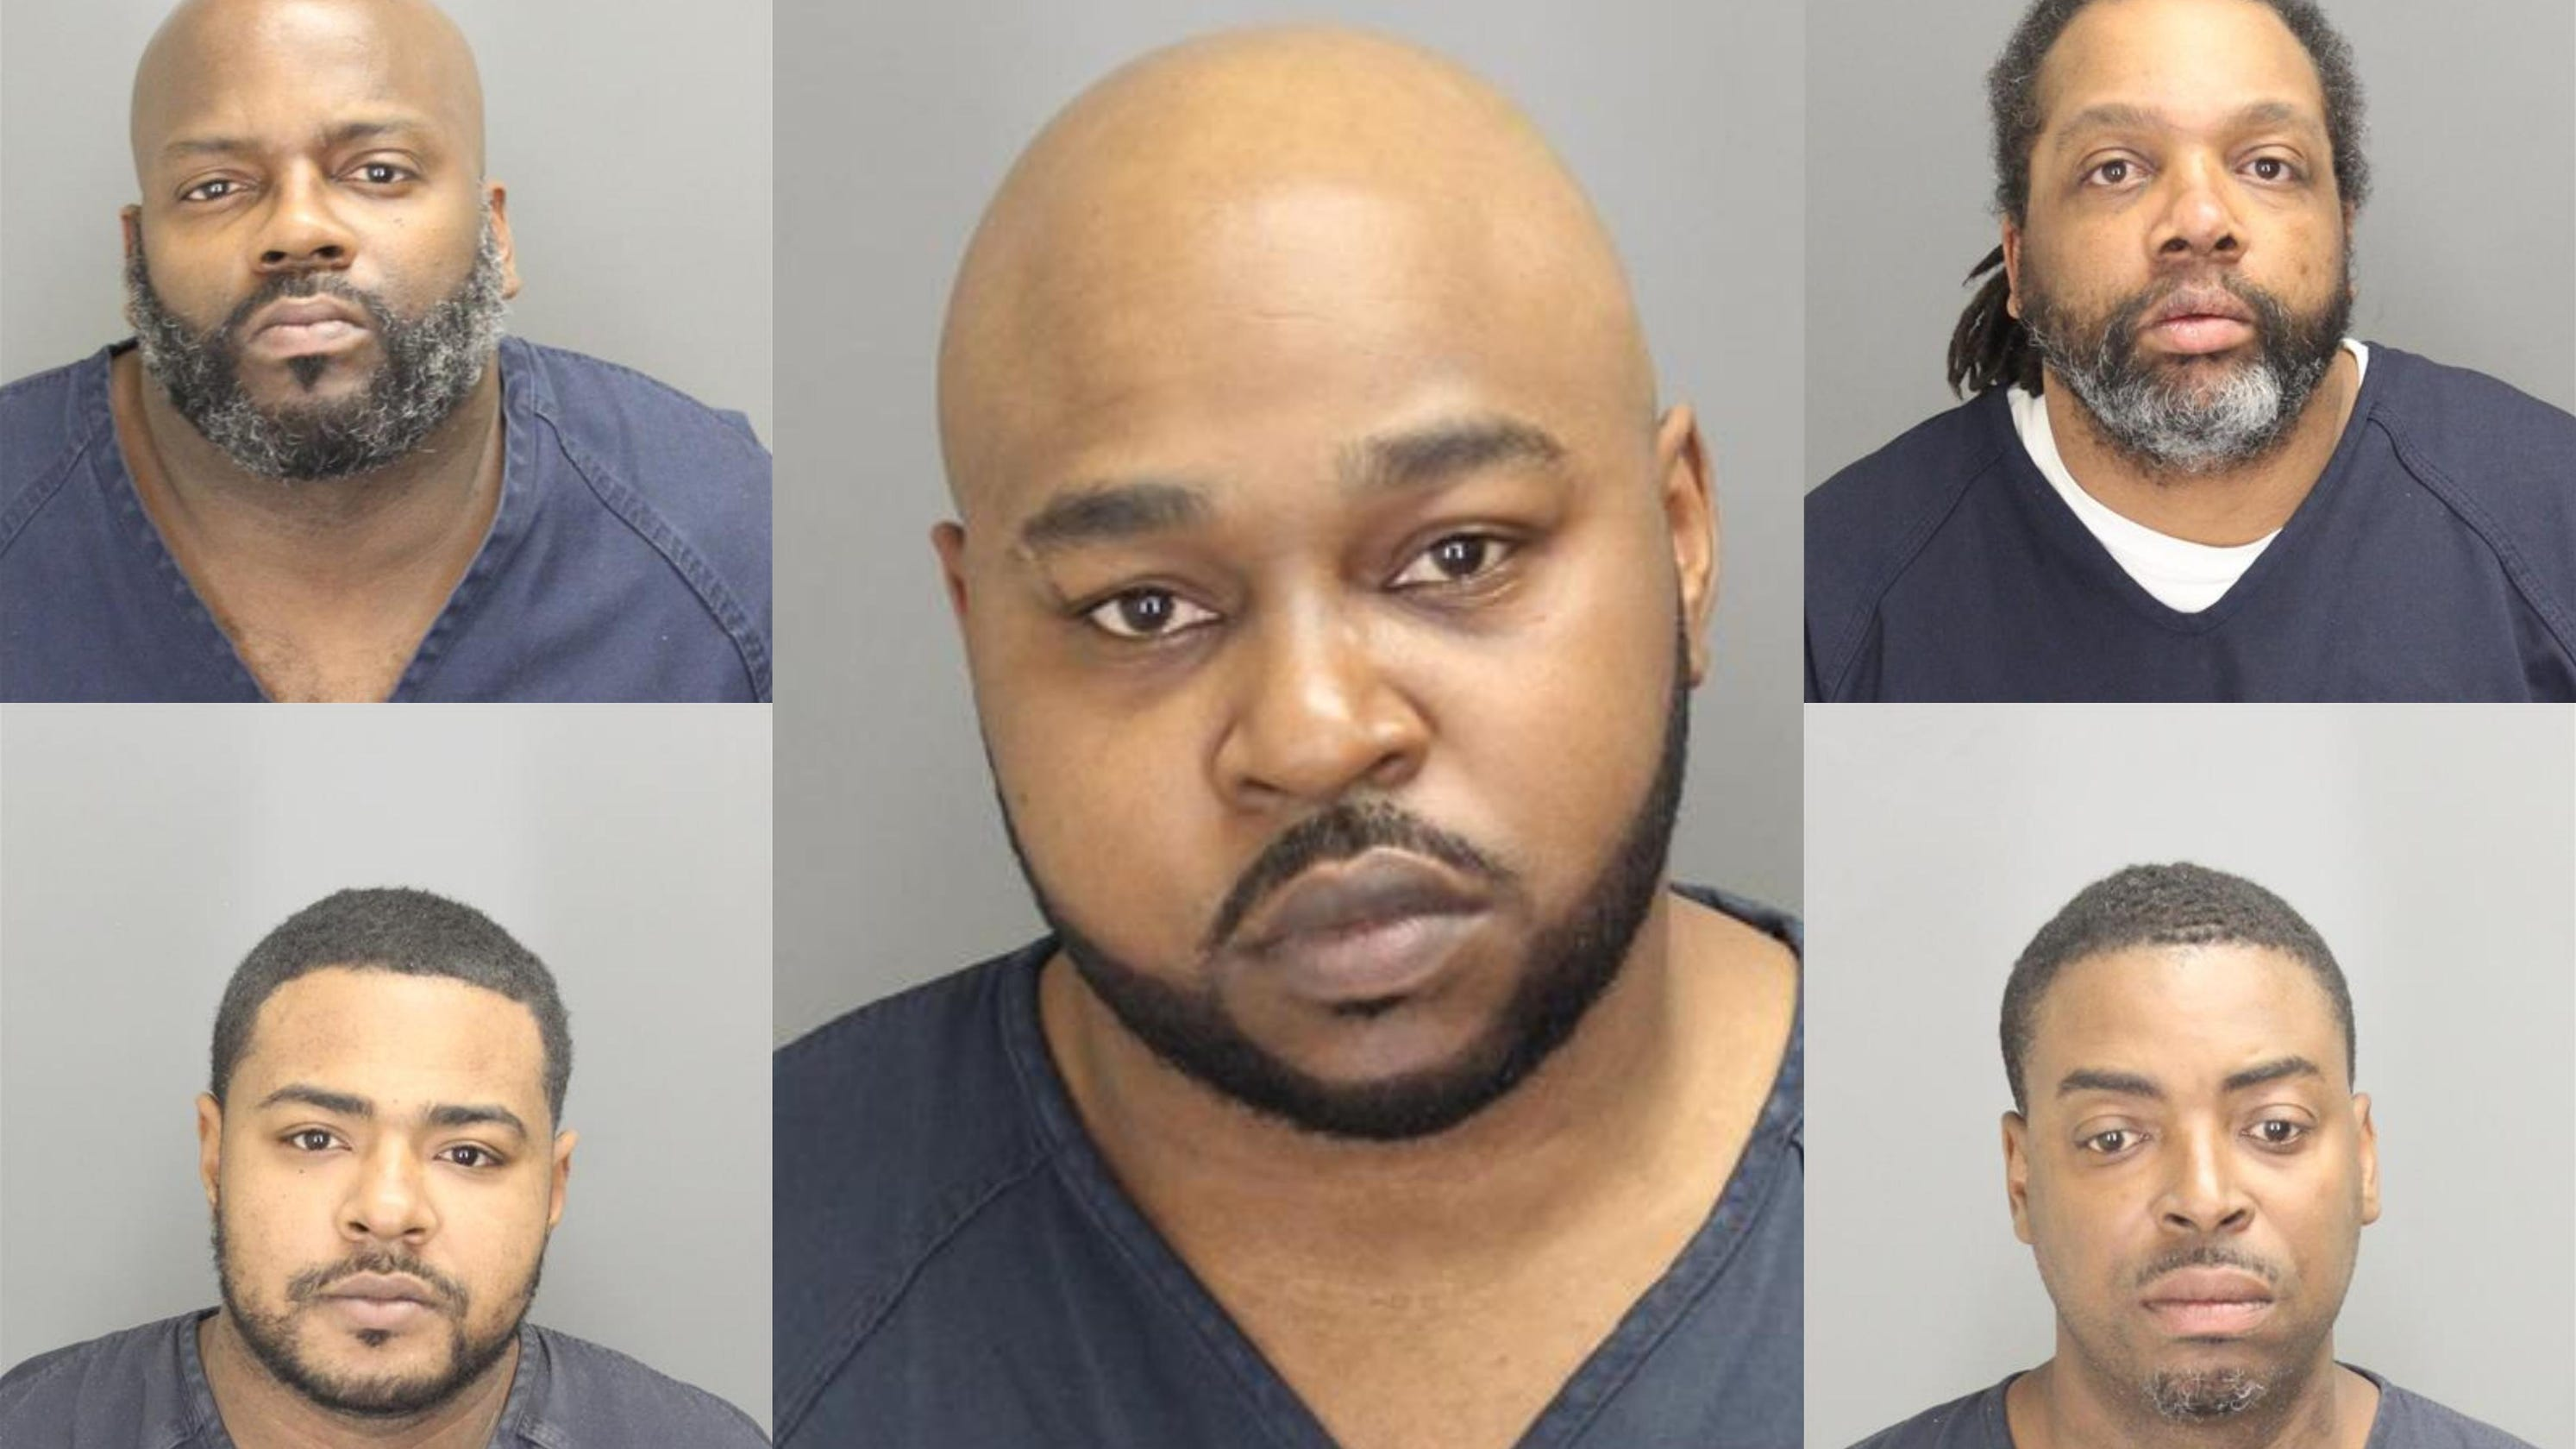 Task force takes down 5 alleged drug dealers in SE Mich